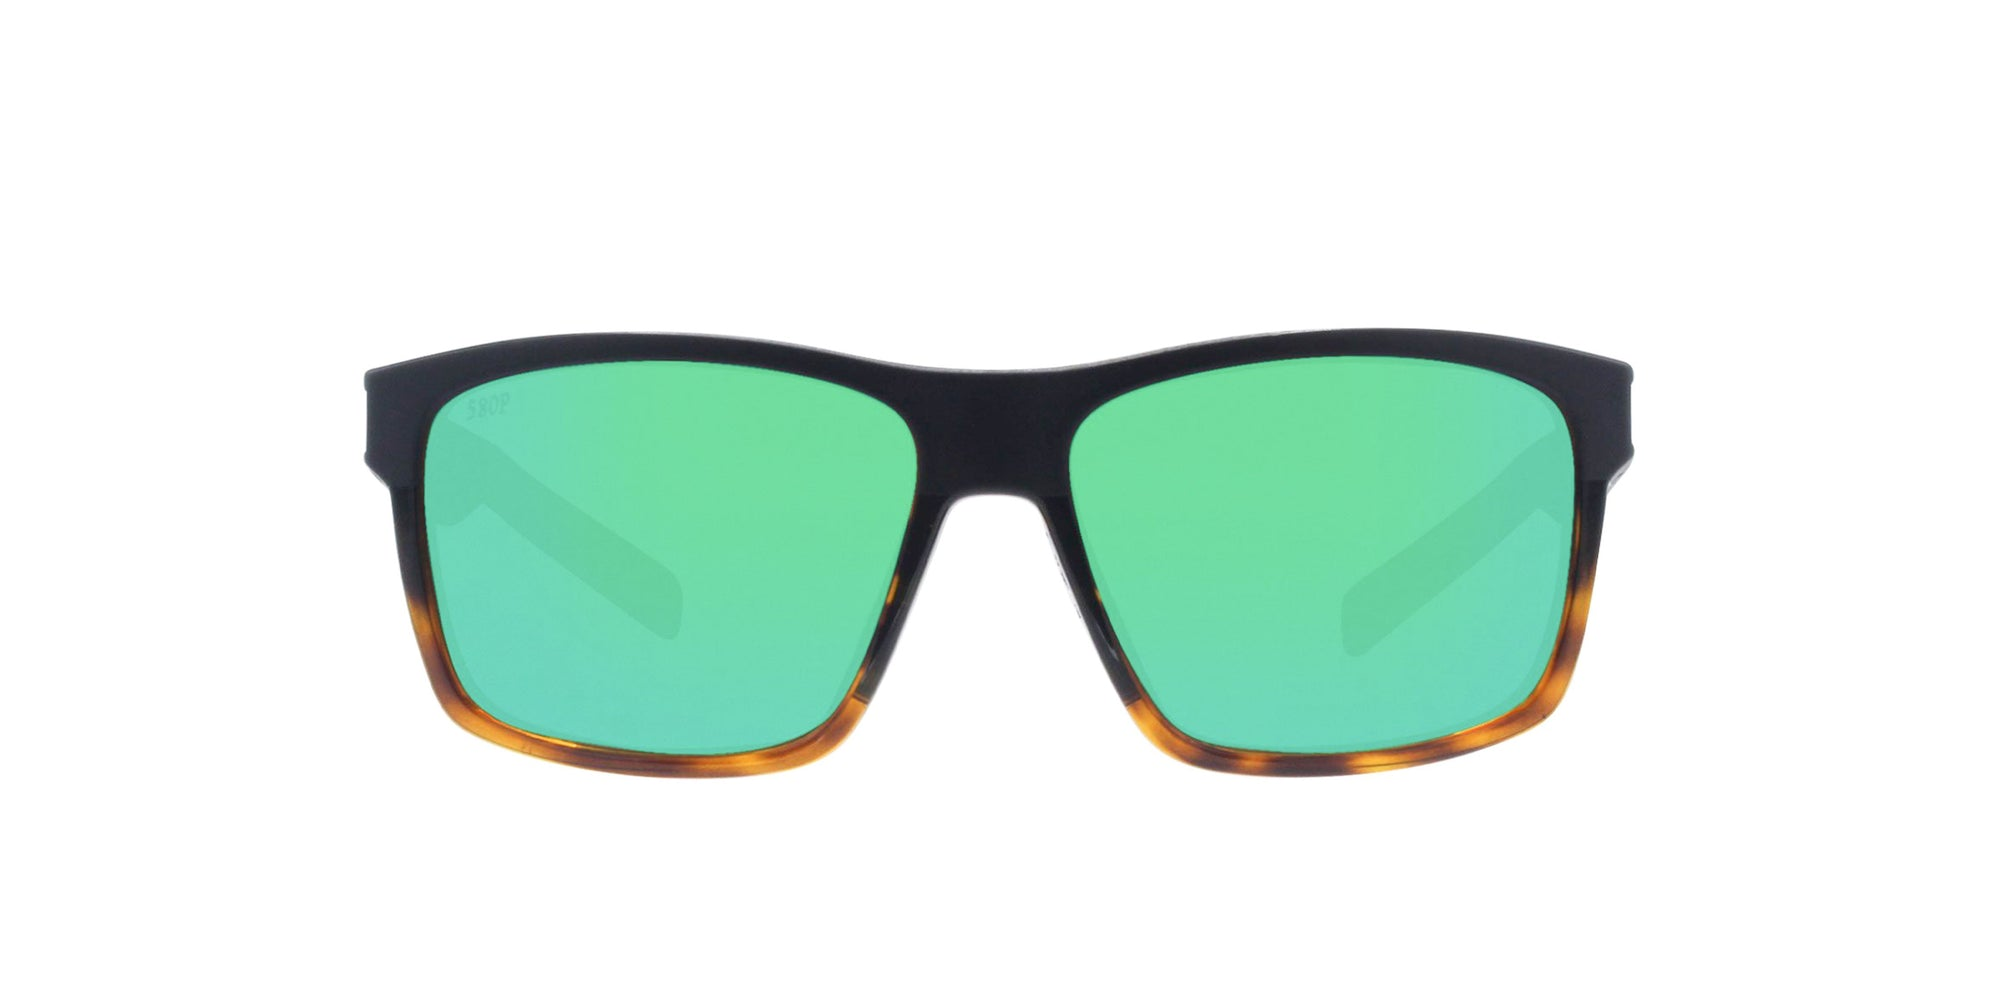 Costa Del Mar - Slack Tide Black Tortoise/Green Mirror Polarized Rectangular Men Sunglasses-Sunglasses-Designer Eyes